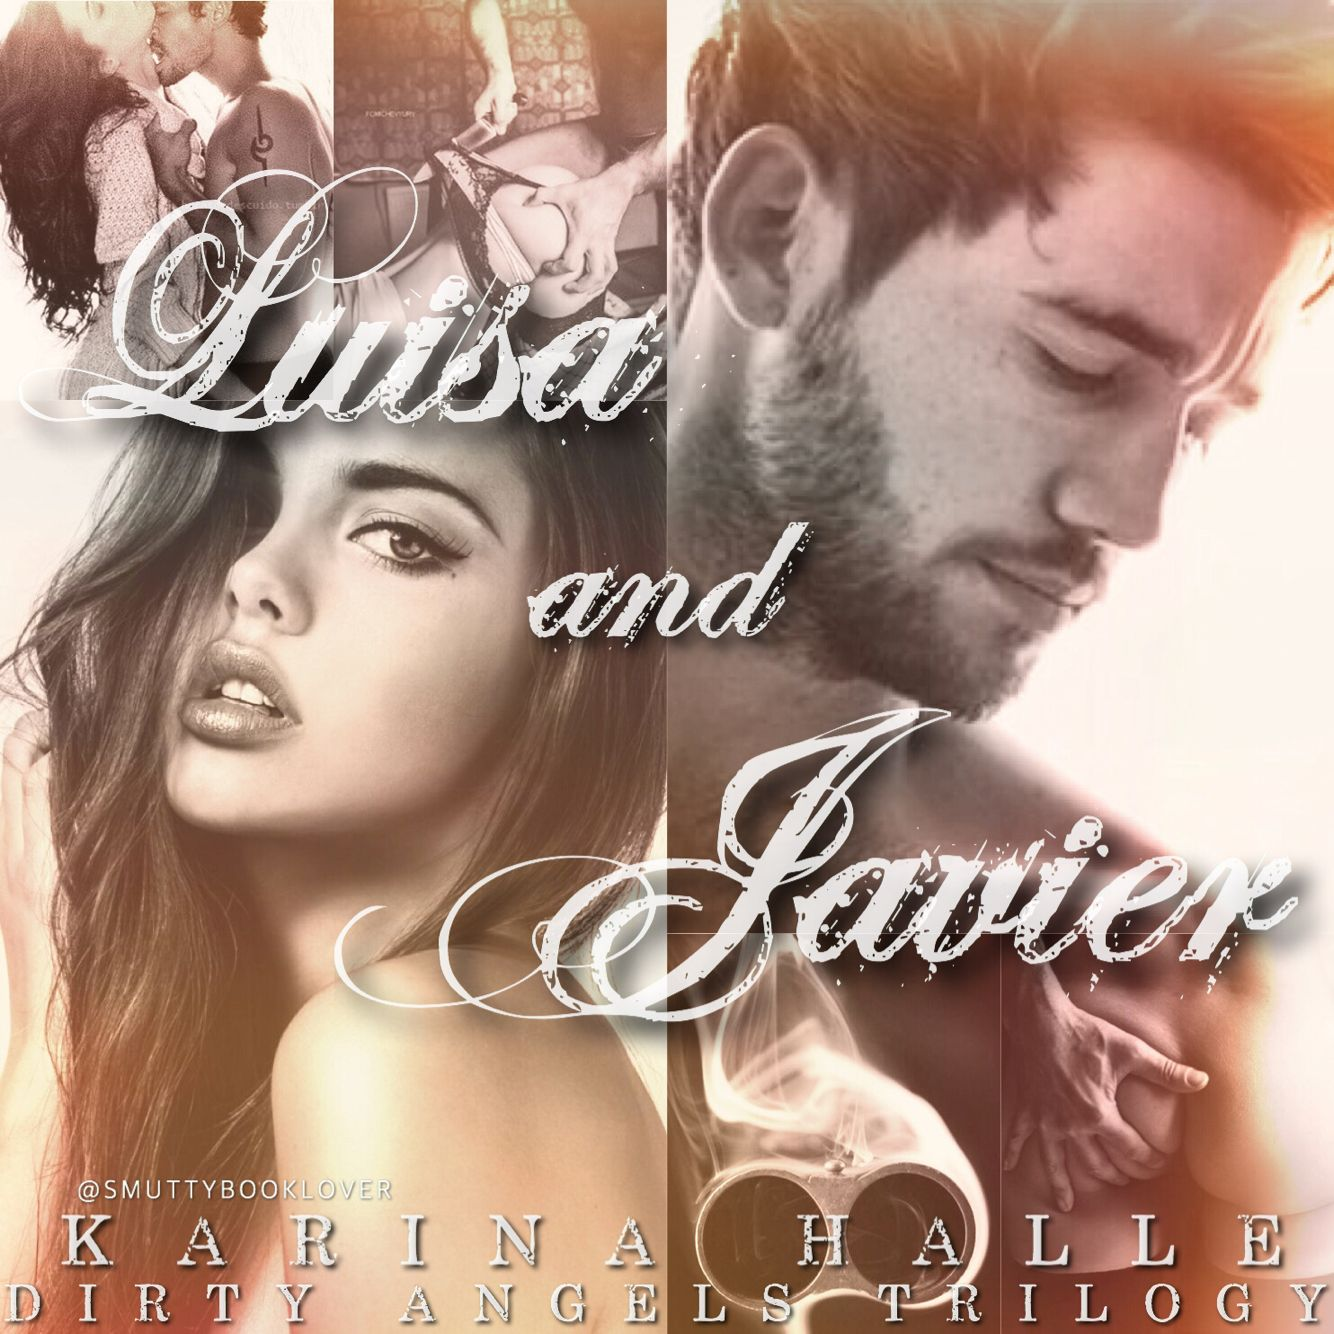 Dirty Angels Trilogy by Karina Halle